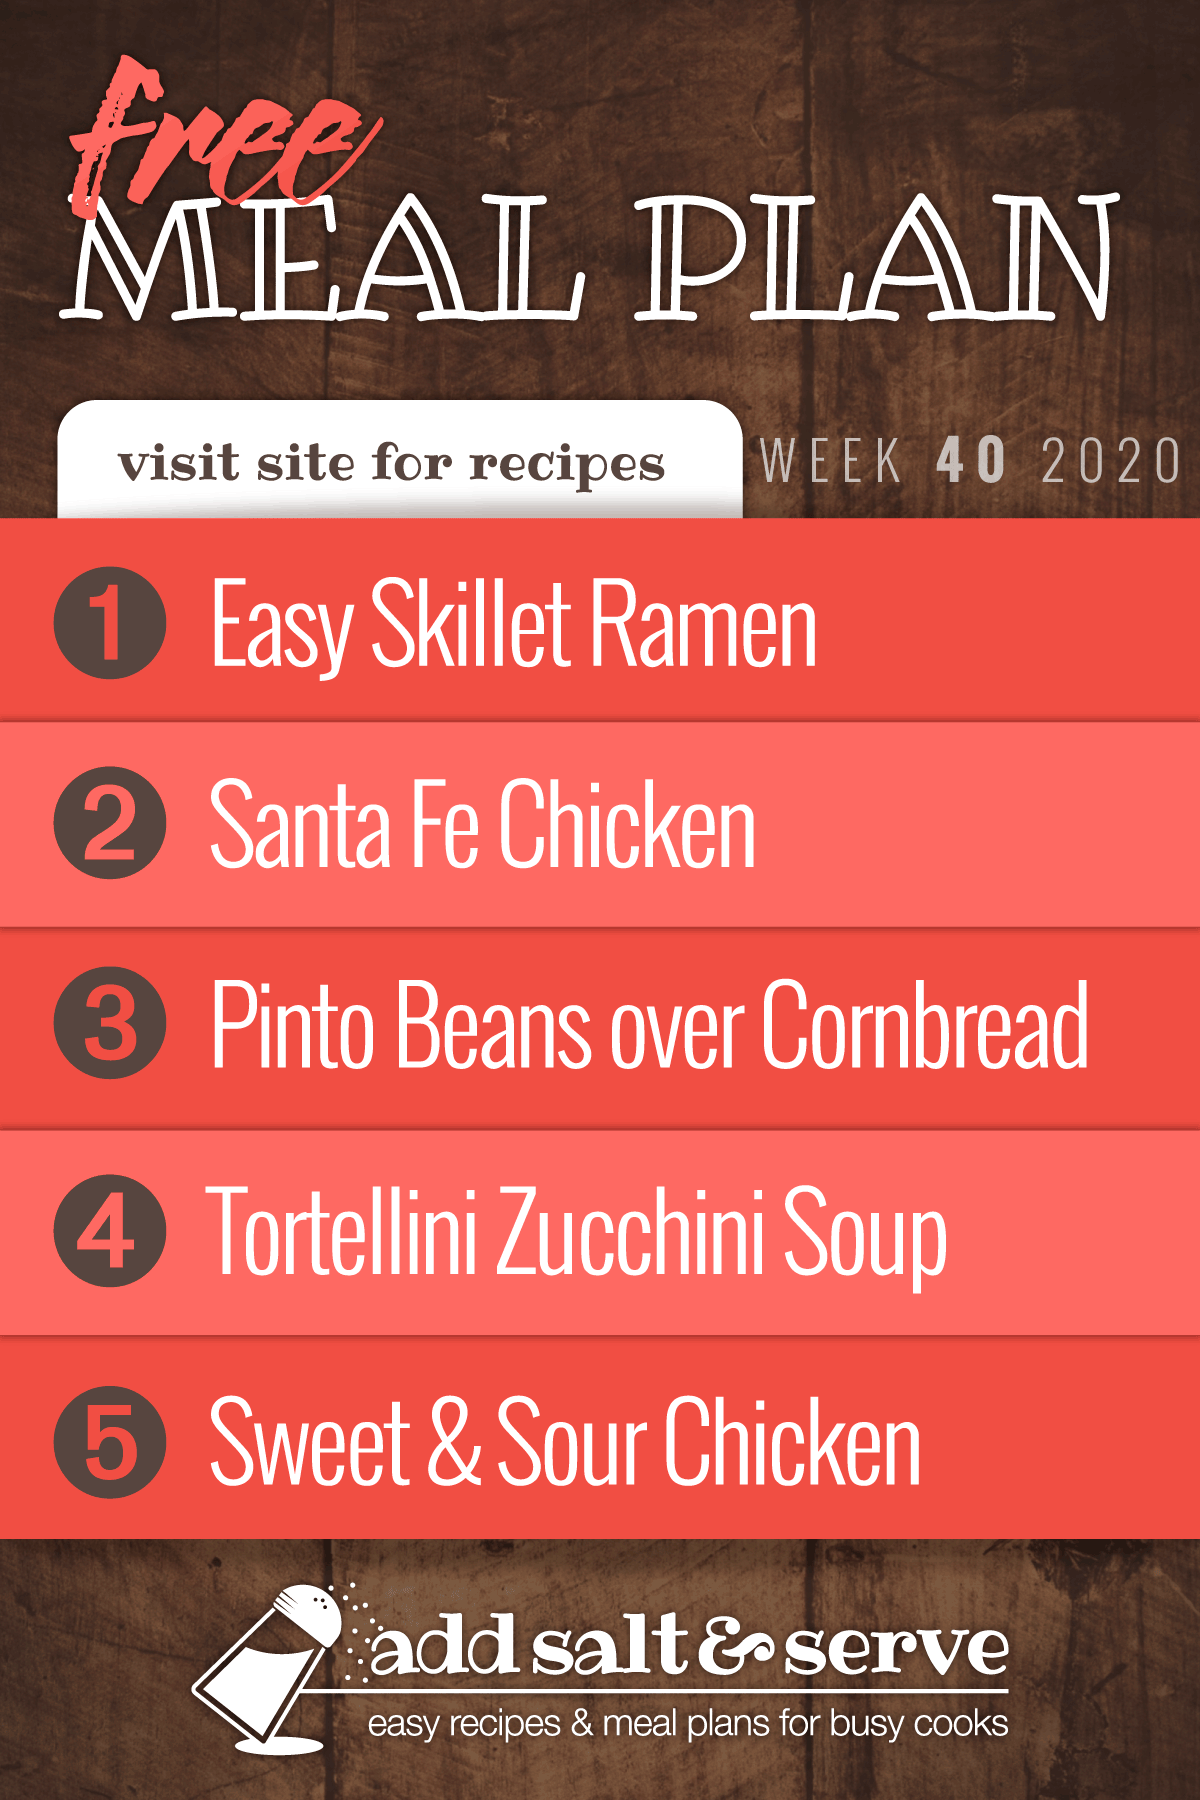 Free Meal Plan for Week 40 2020 (visit site for recipes): Easy Skillet Ramen, Santa Fe Chicken, Pinto Beans over Cornbread, Tortellini Zucchini Soup, Slow Cooker Sweet and Sour Chicken over Rice